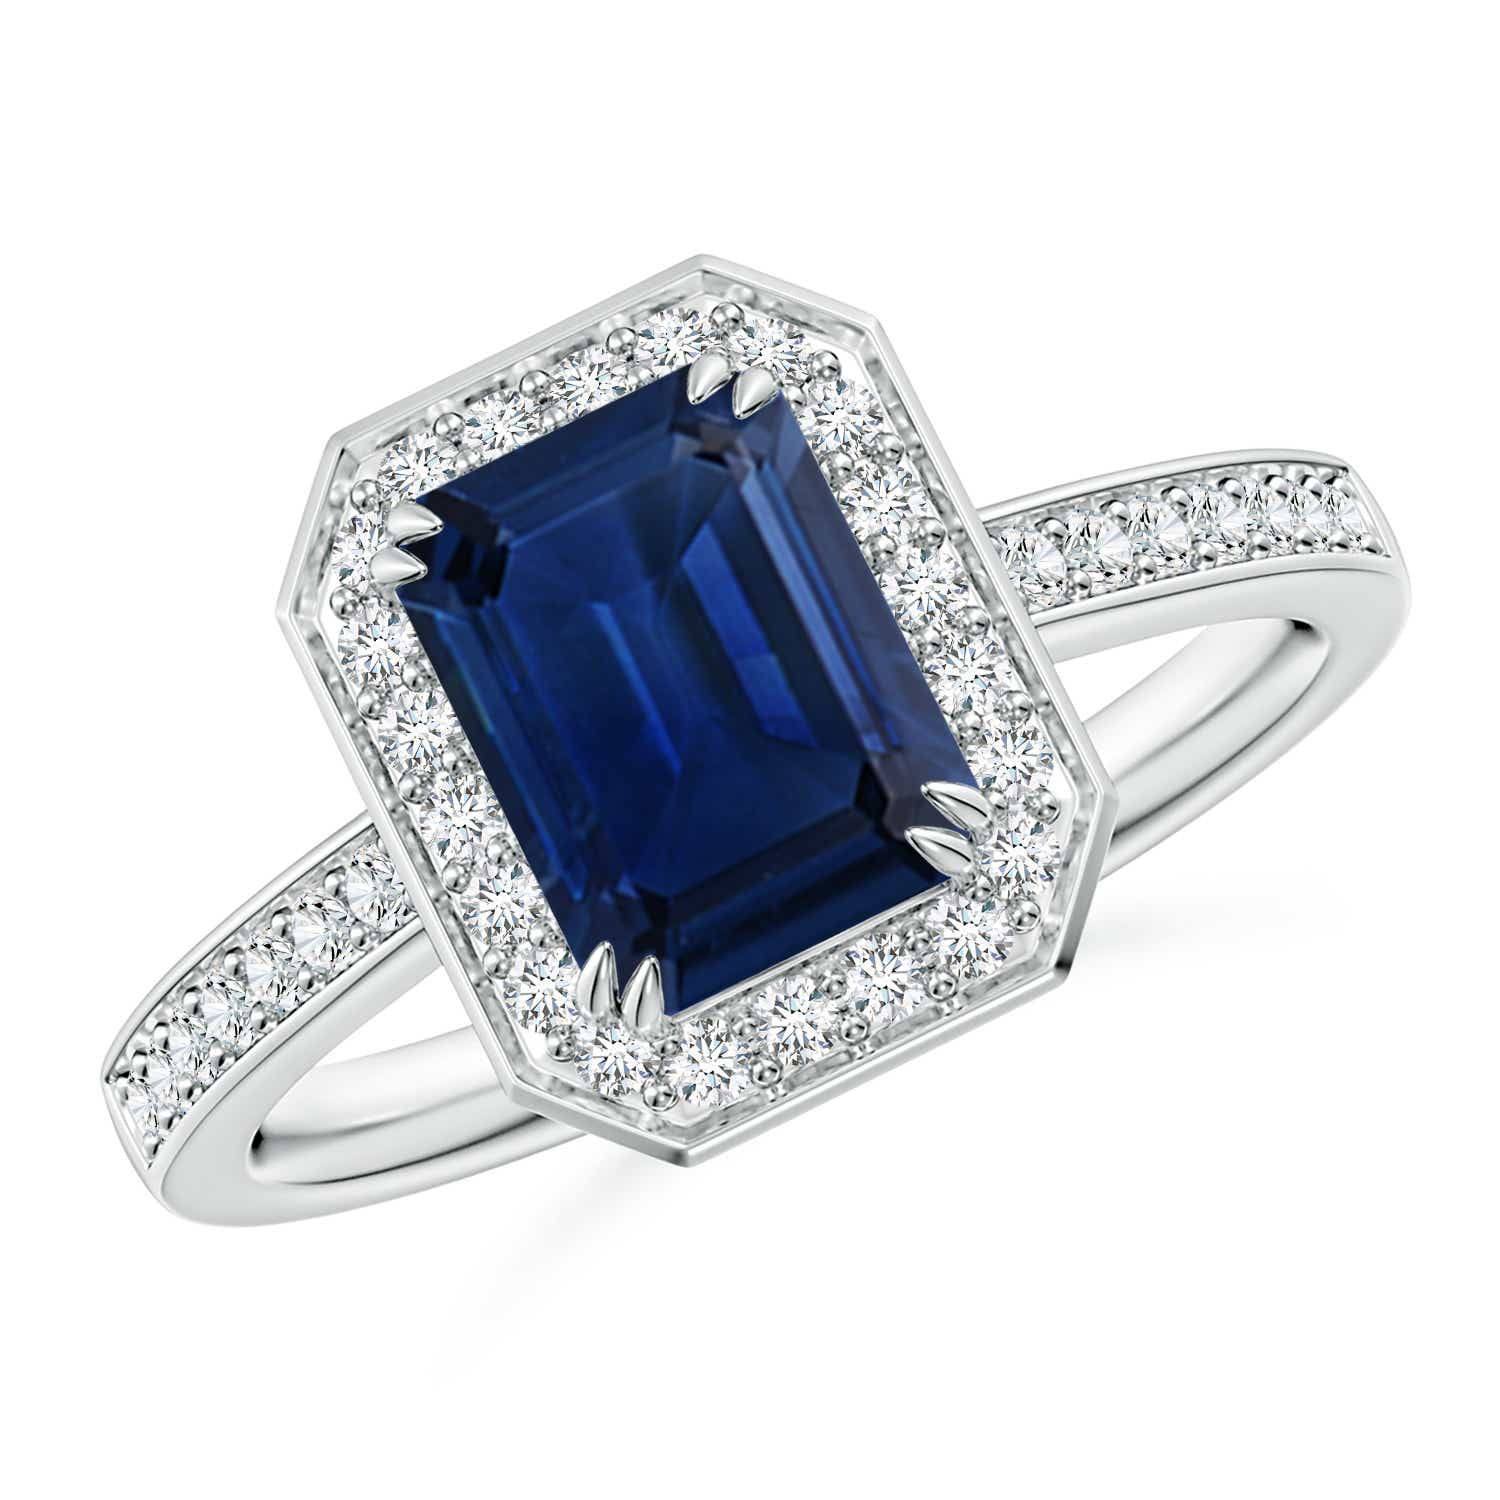 cd9d66a88cf5d Emerald-Cut Blue Sapphire Engagement Ring with Diamond Halo